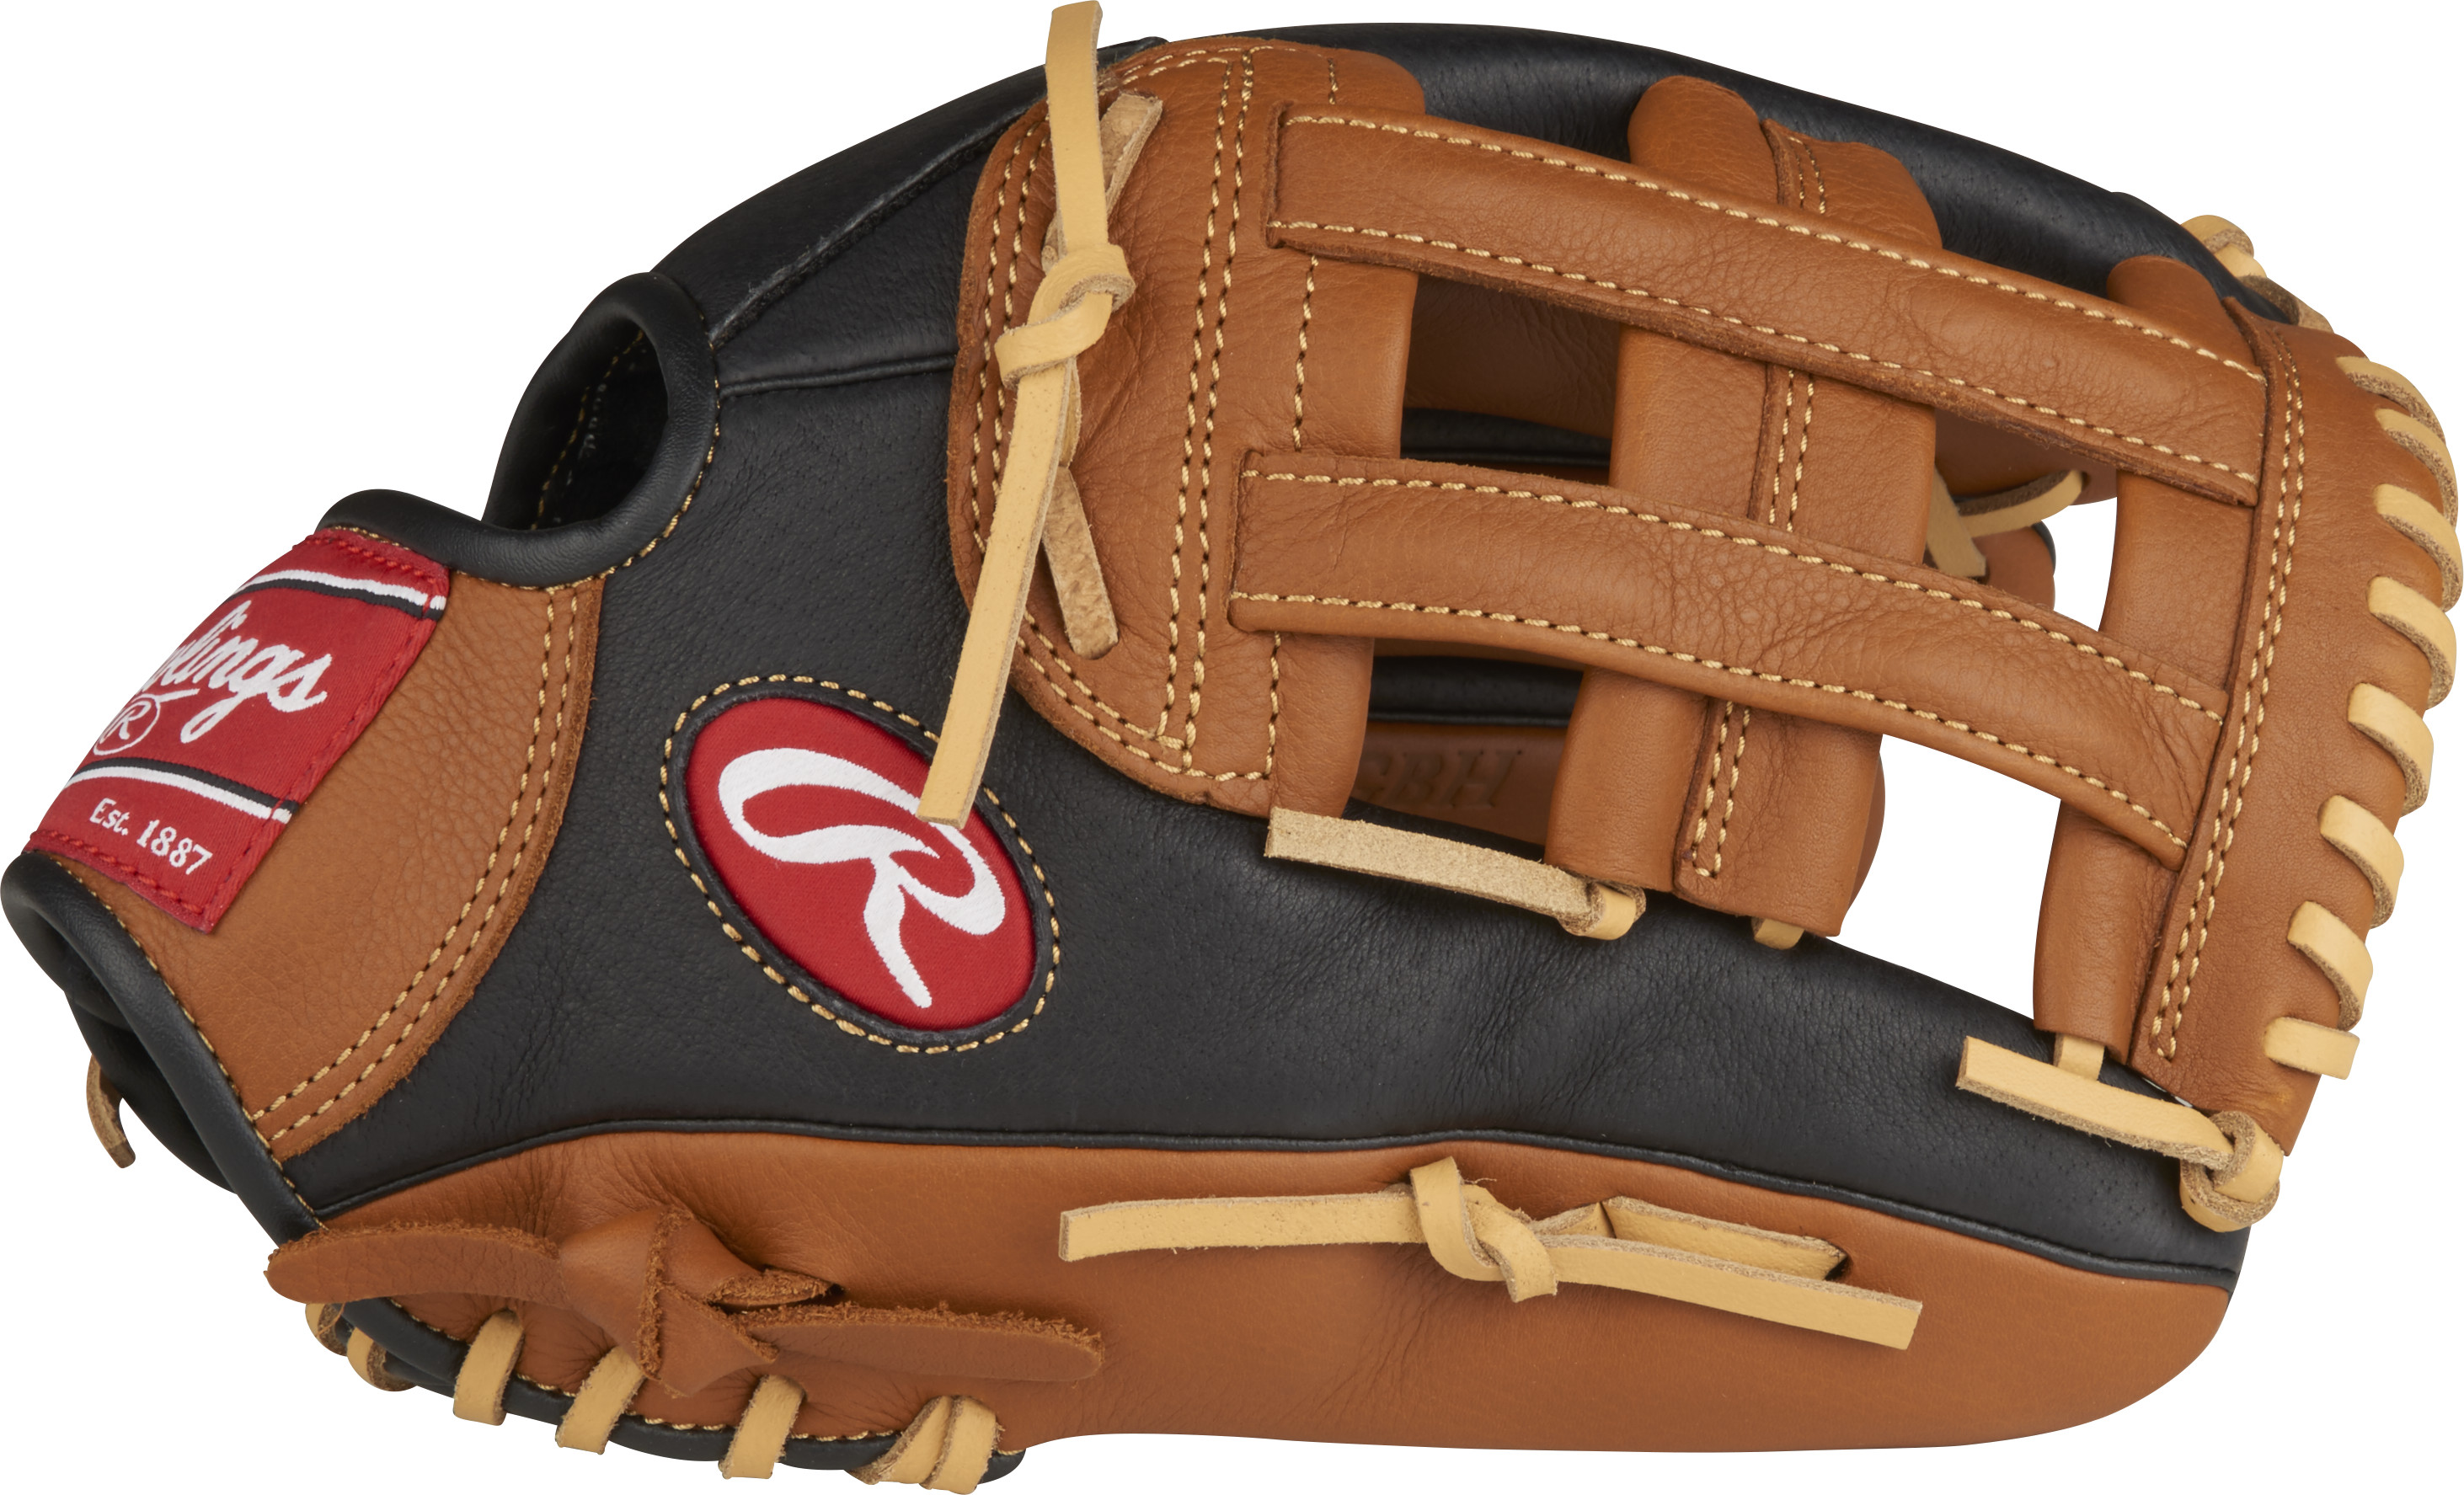 http://www.bestbatdeals.com/images/gloves/rawlings/P120GBH-3.jpg